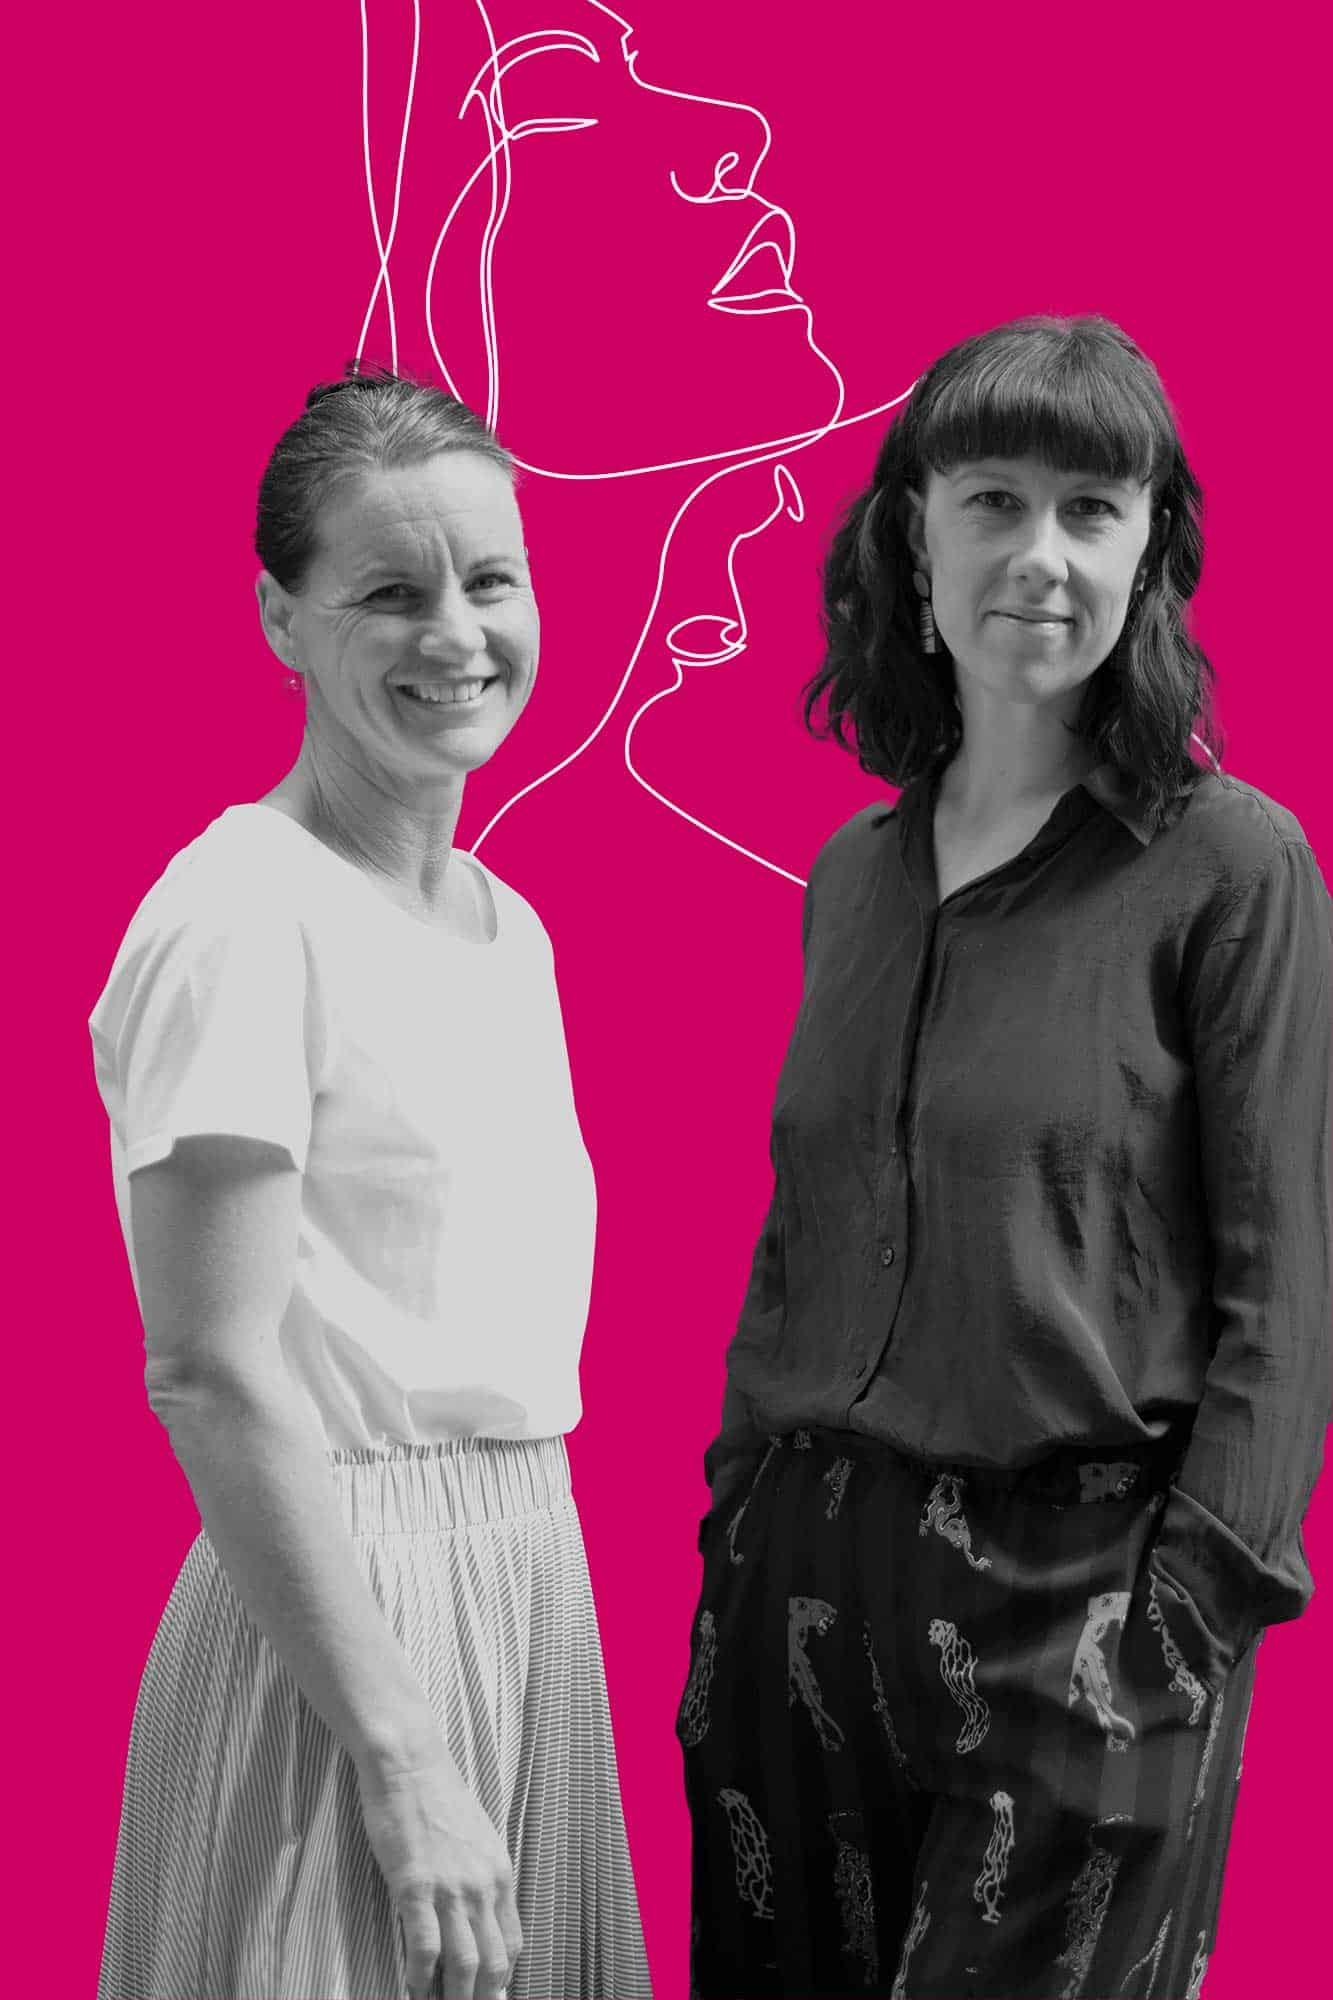 The Good Bits founders Siobhan Fitzgerald and Carol Battle